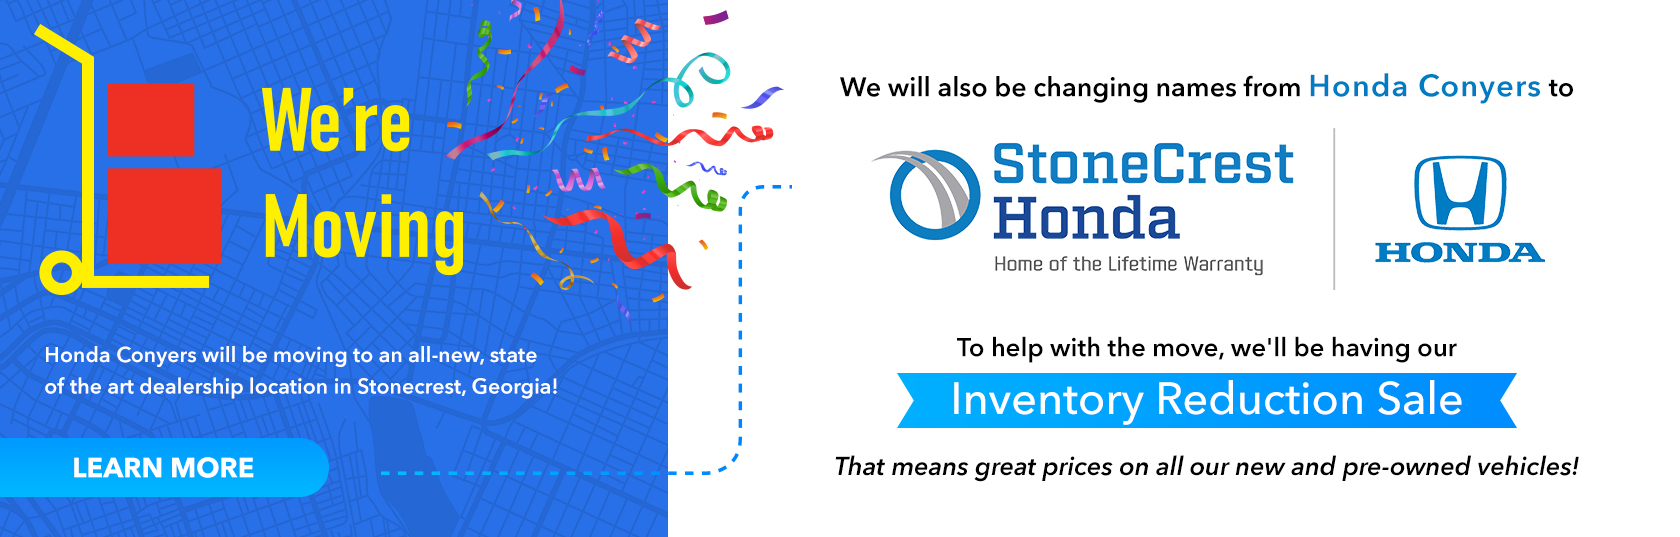 We're Moving Sale Image Banner